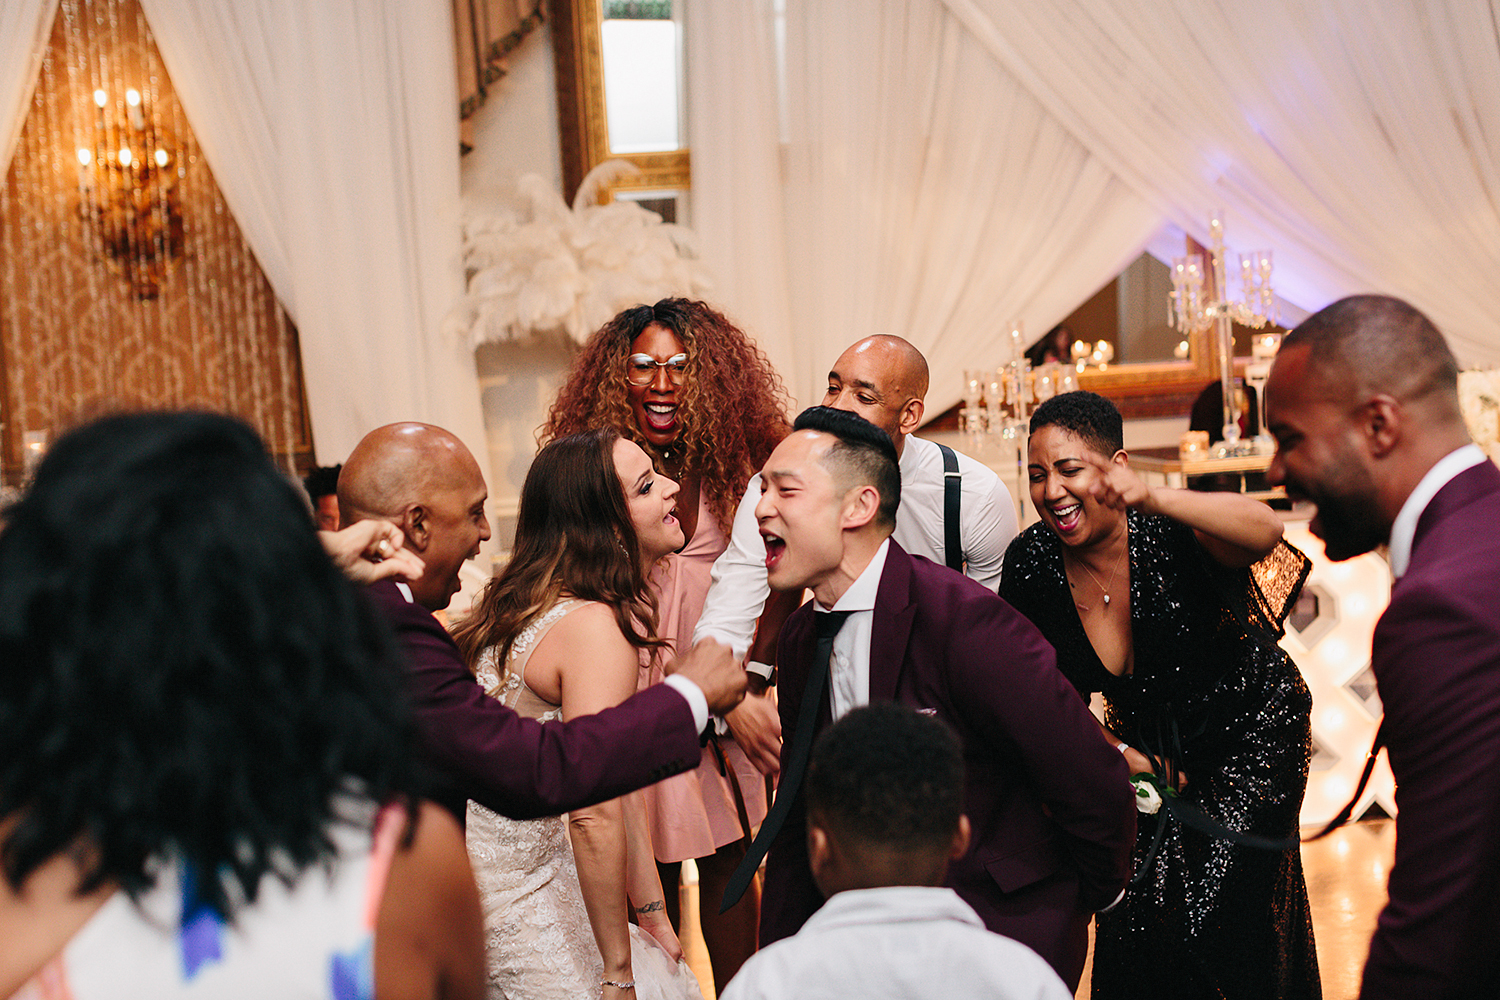 Best-Wedding-Venues-Toronto-Liberty-Grande-vintage-wedding-photography-toronto-bride-and-groom-wedding-photographer-reception-huge-party-bride-and-groomsmen-dancing.jpg